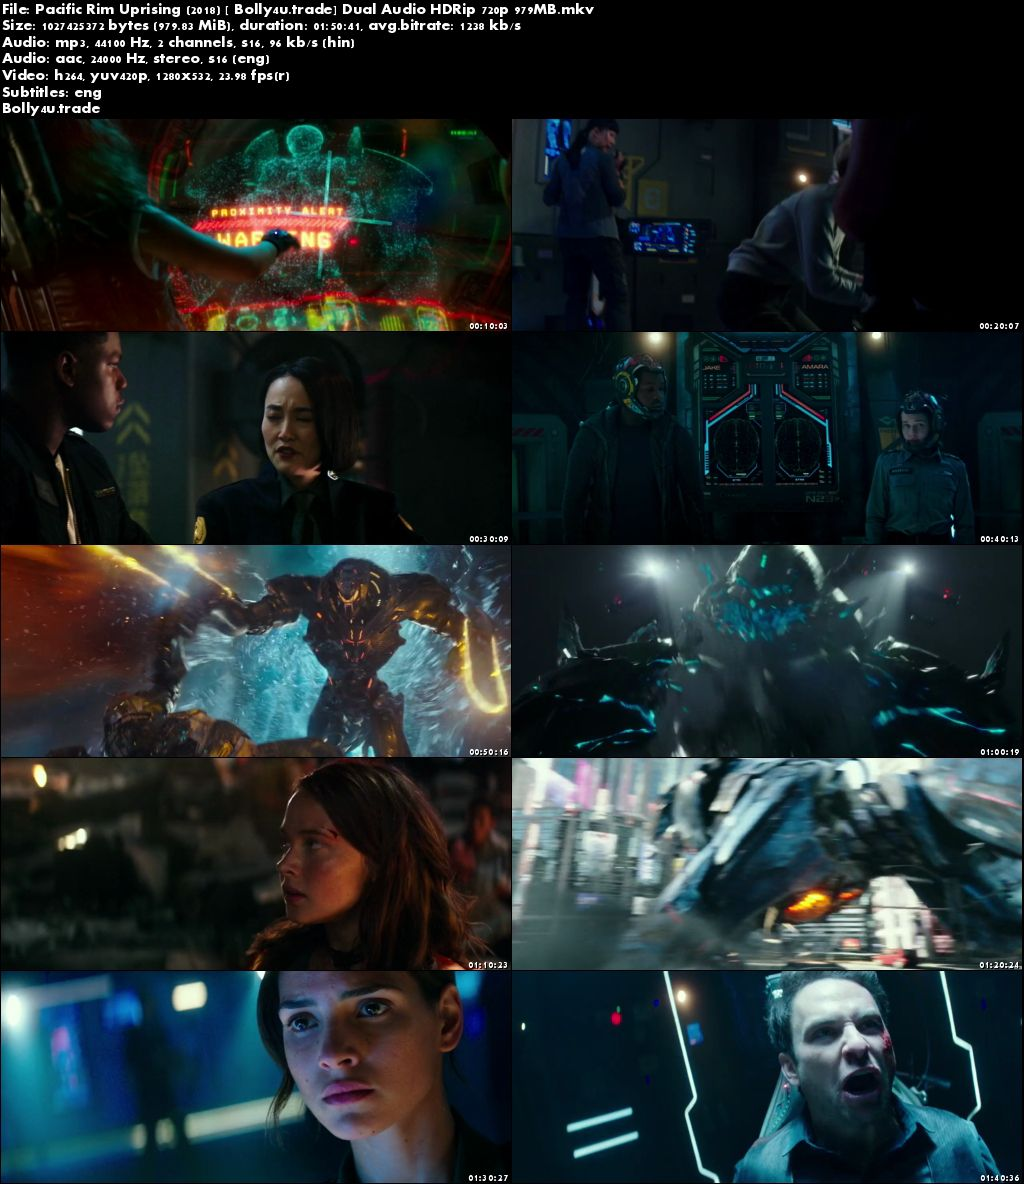 Pacific Rim Uprising 2018 HDRip 950MB Hindi Dual Audio 720p ESub Download